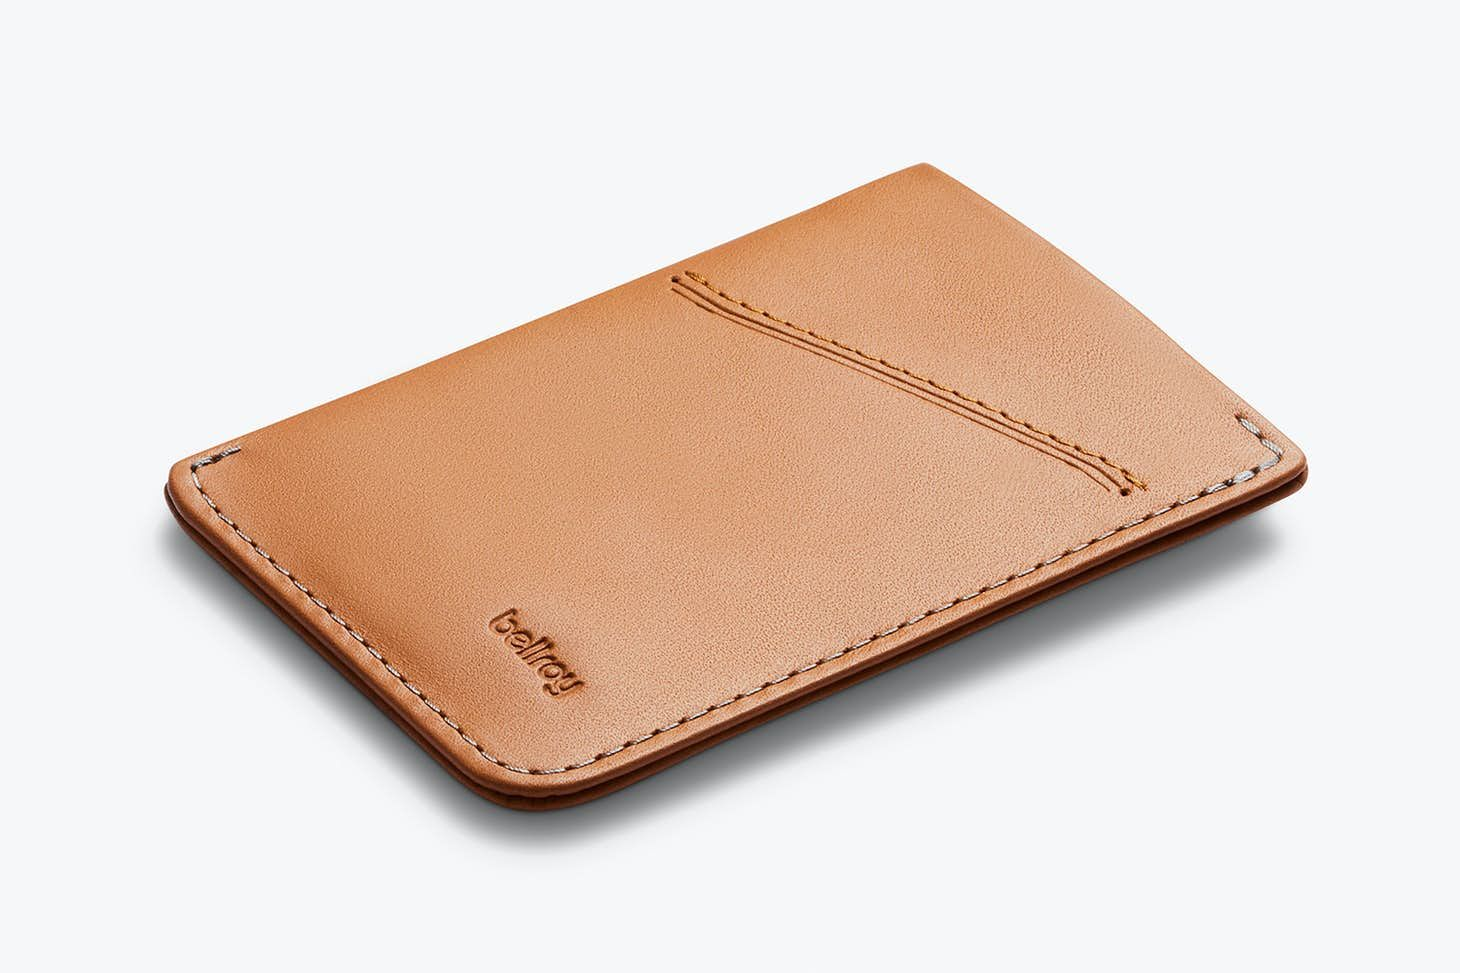 Pin By Aaron Thompson On Stuff Leather Card Holder Wallet Card Sleeve Card Sleeve Wallet